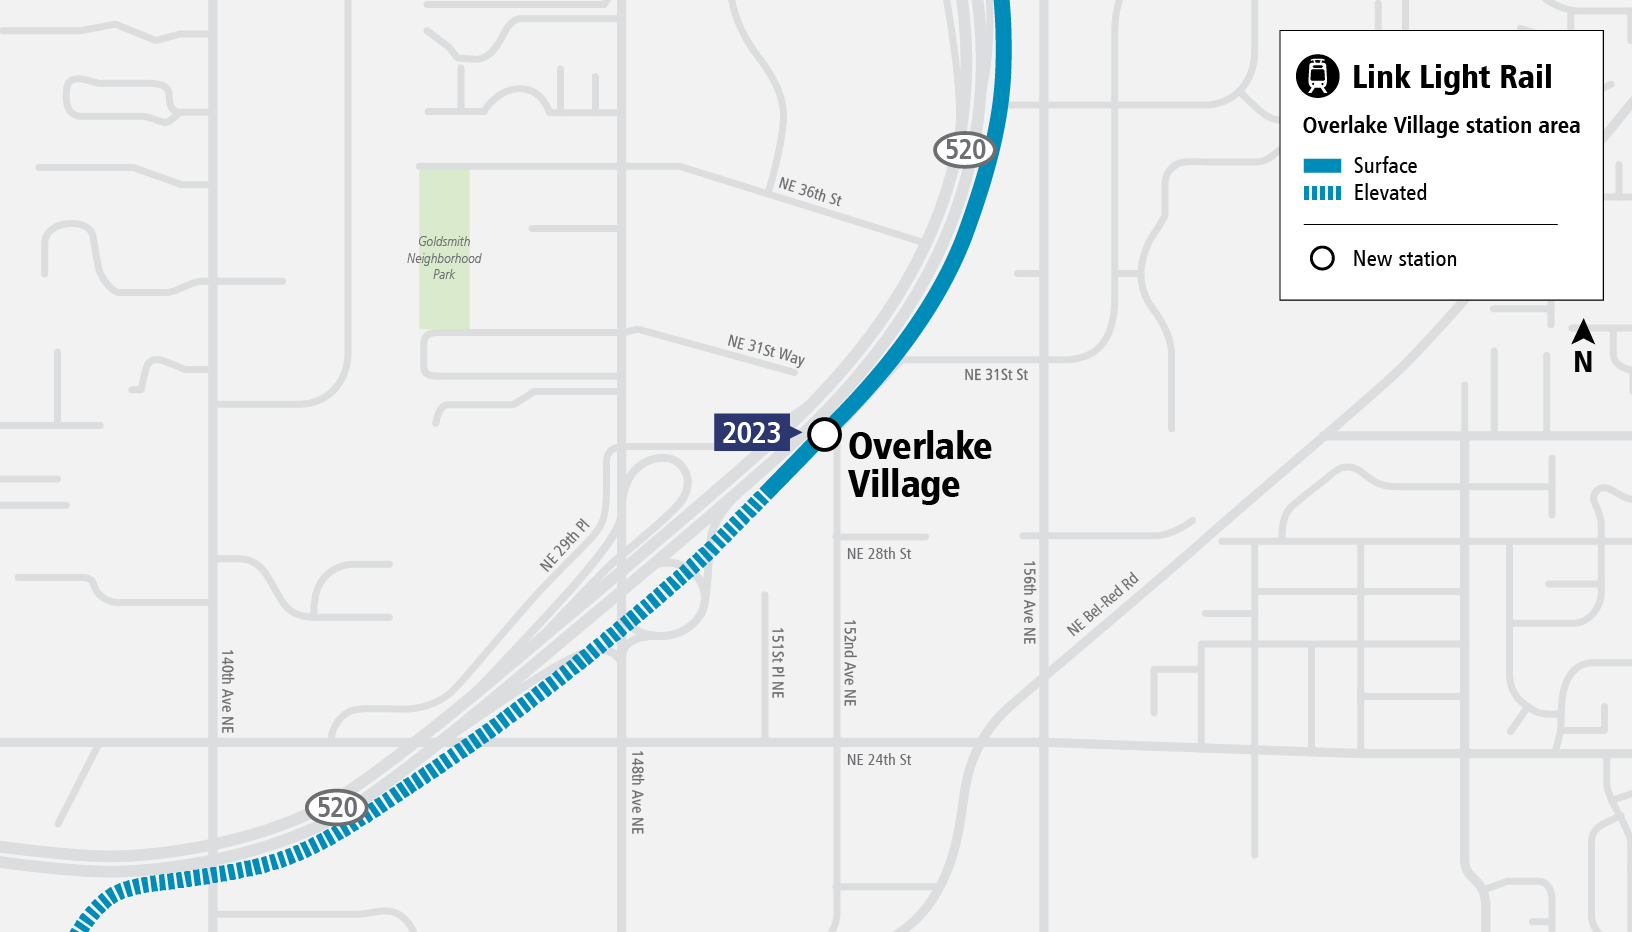 web-system-expansion-overlake-village-station-201809.png